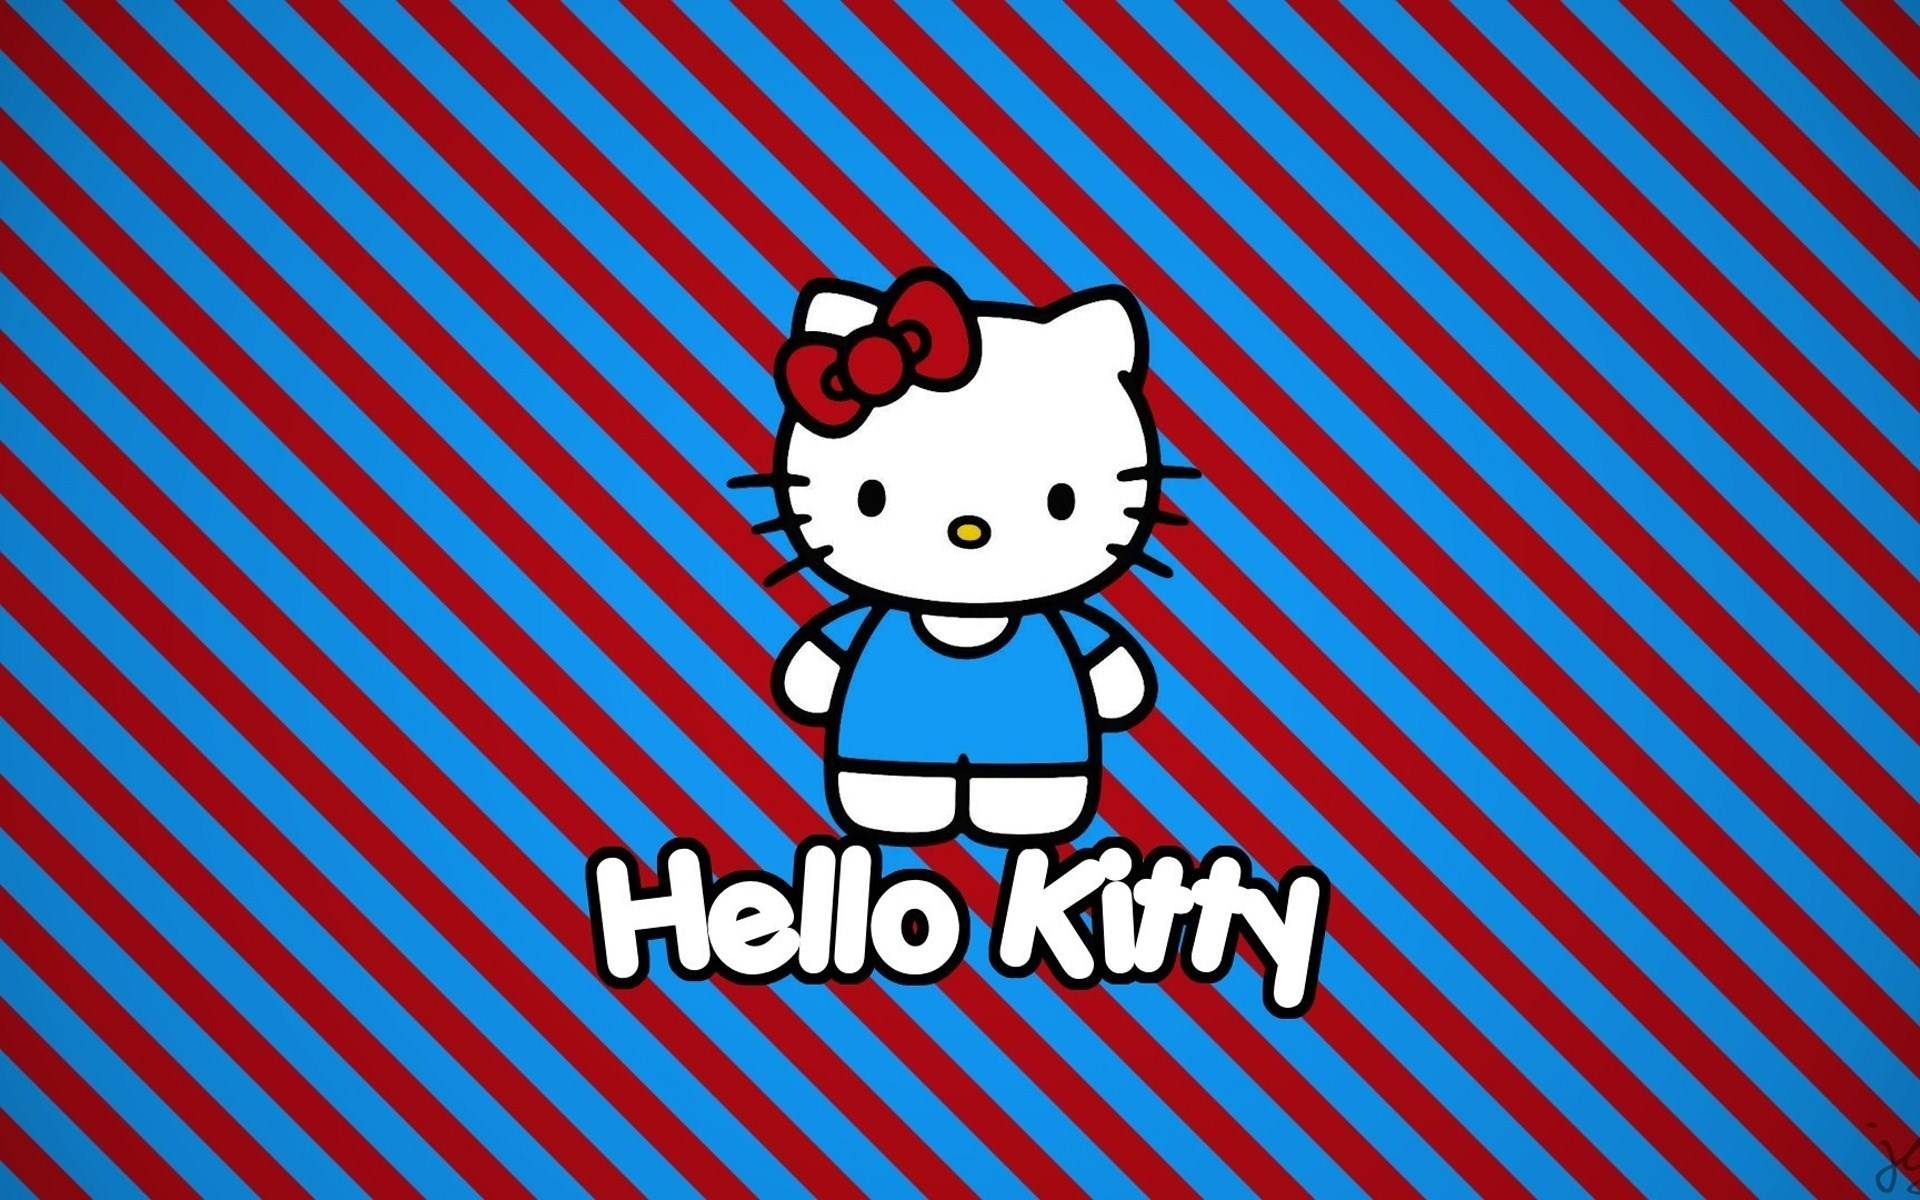 Free Cute Fall Wallpapers 15 Hello Kitty Hd Backgrounds Wallpapers Images